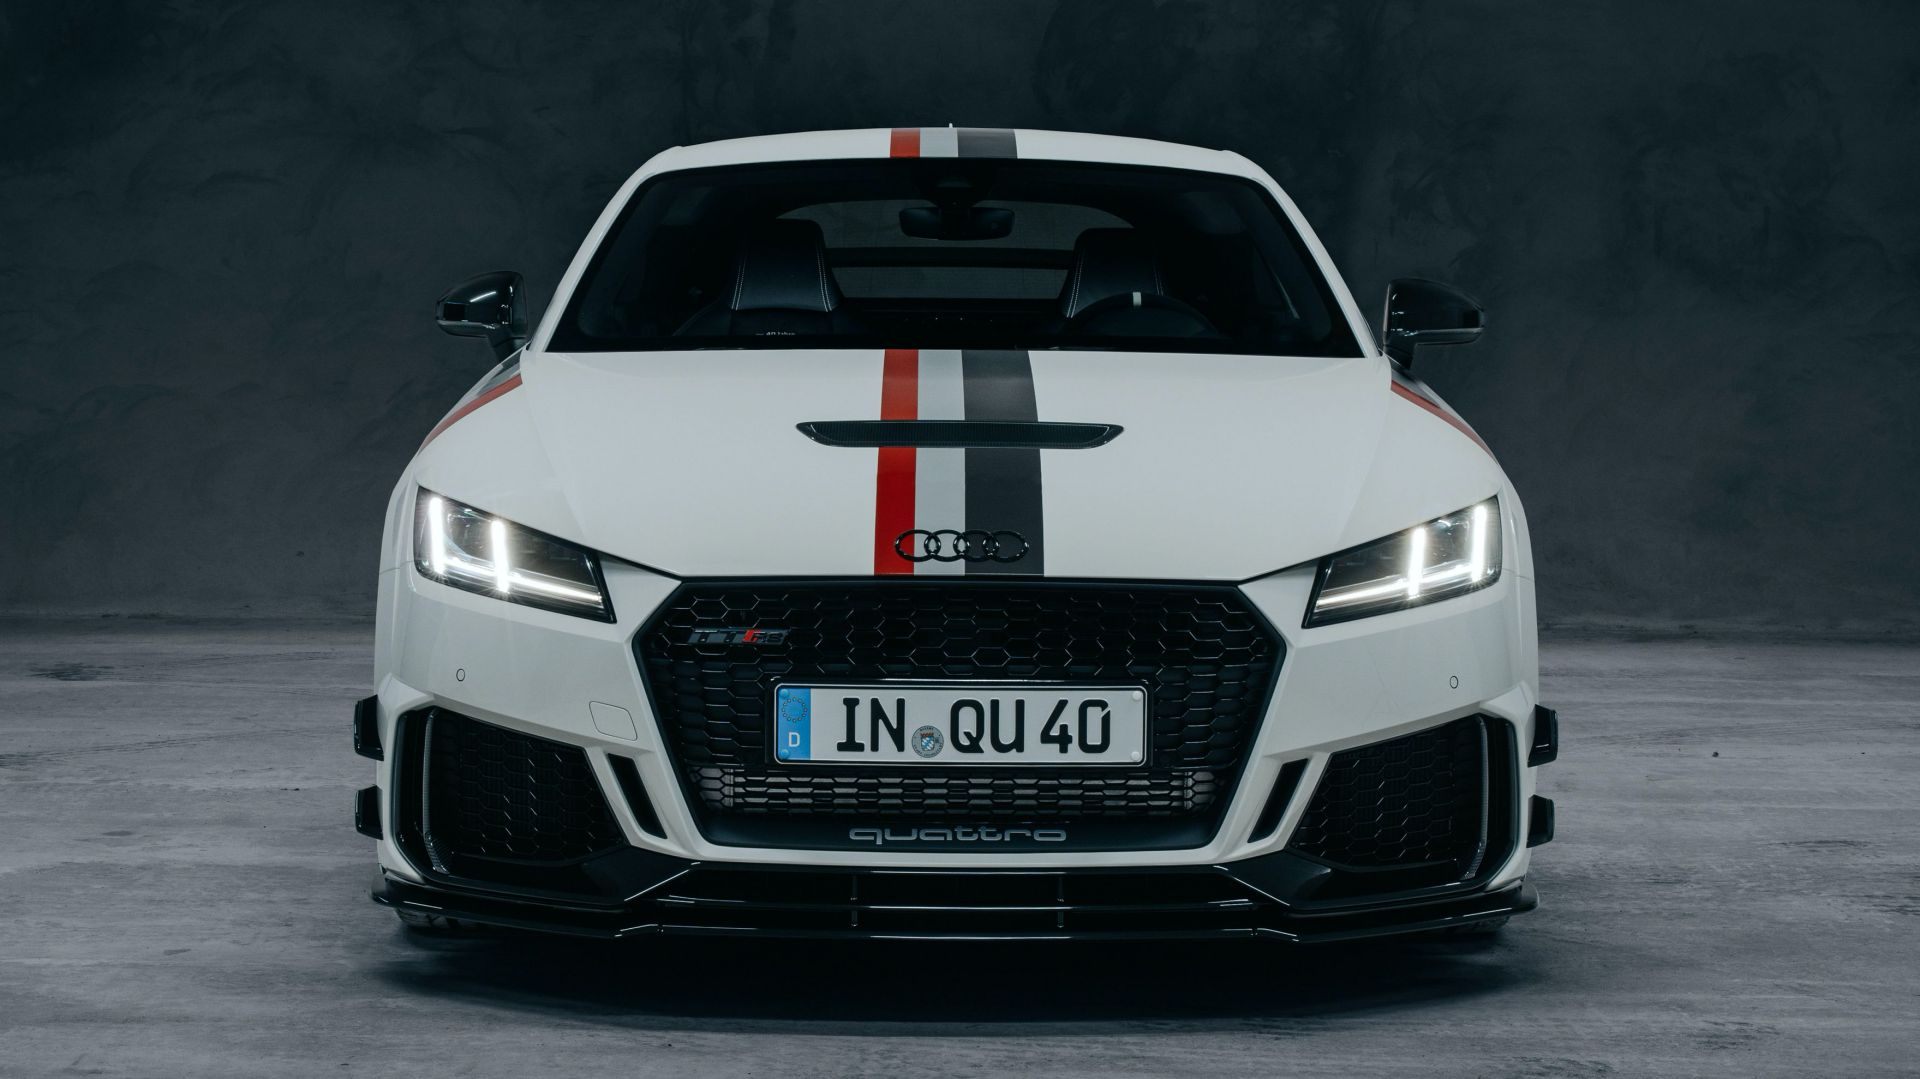 2021-Audi-TT-RS-40-years-of-quattro-Edition-4